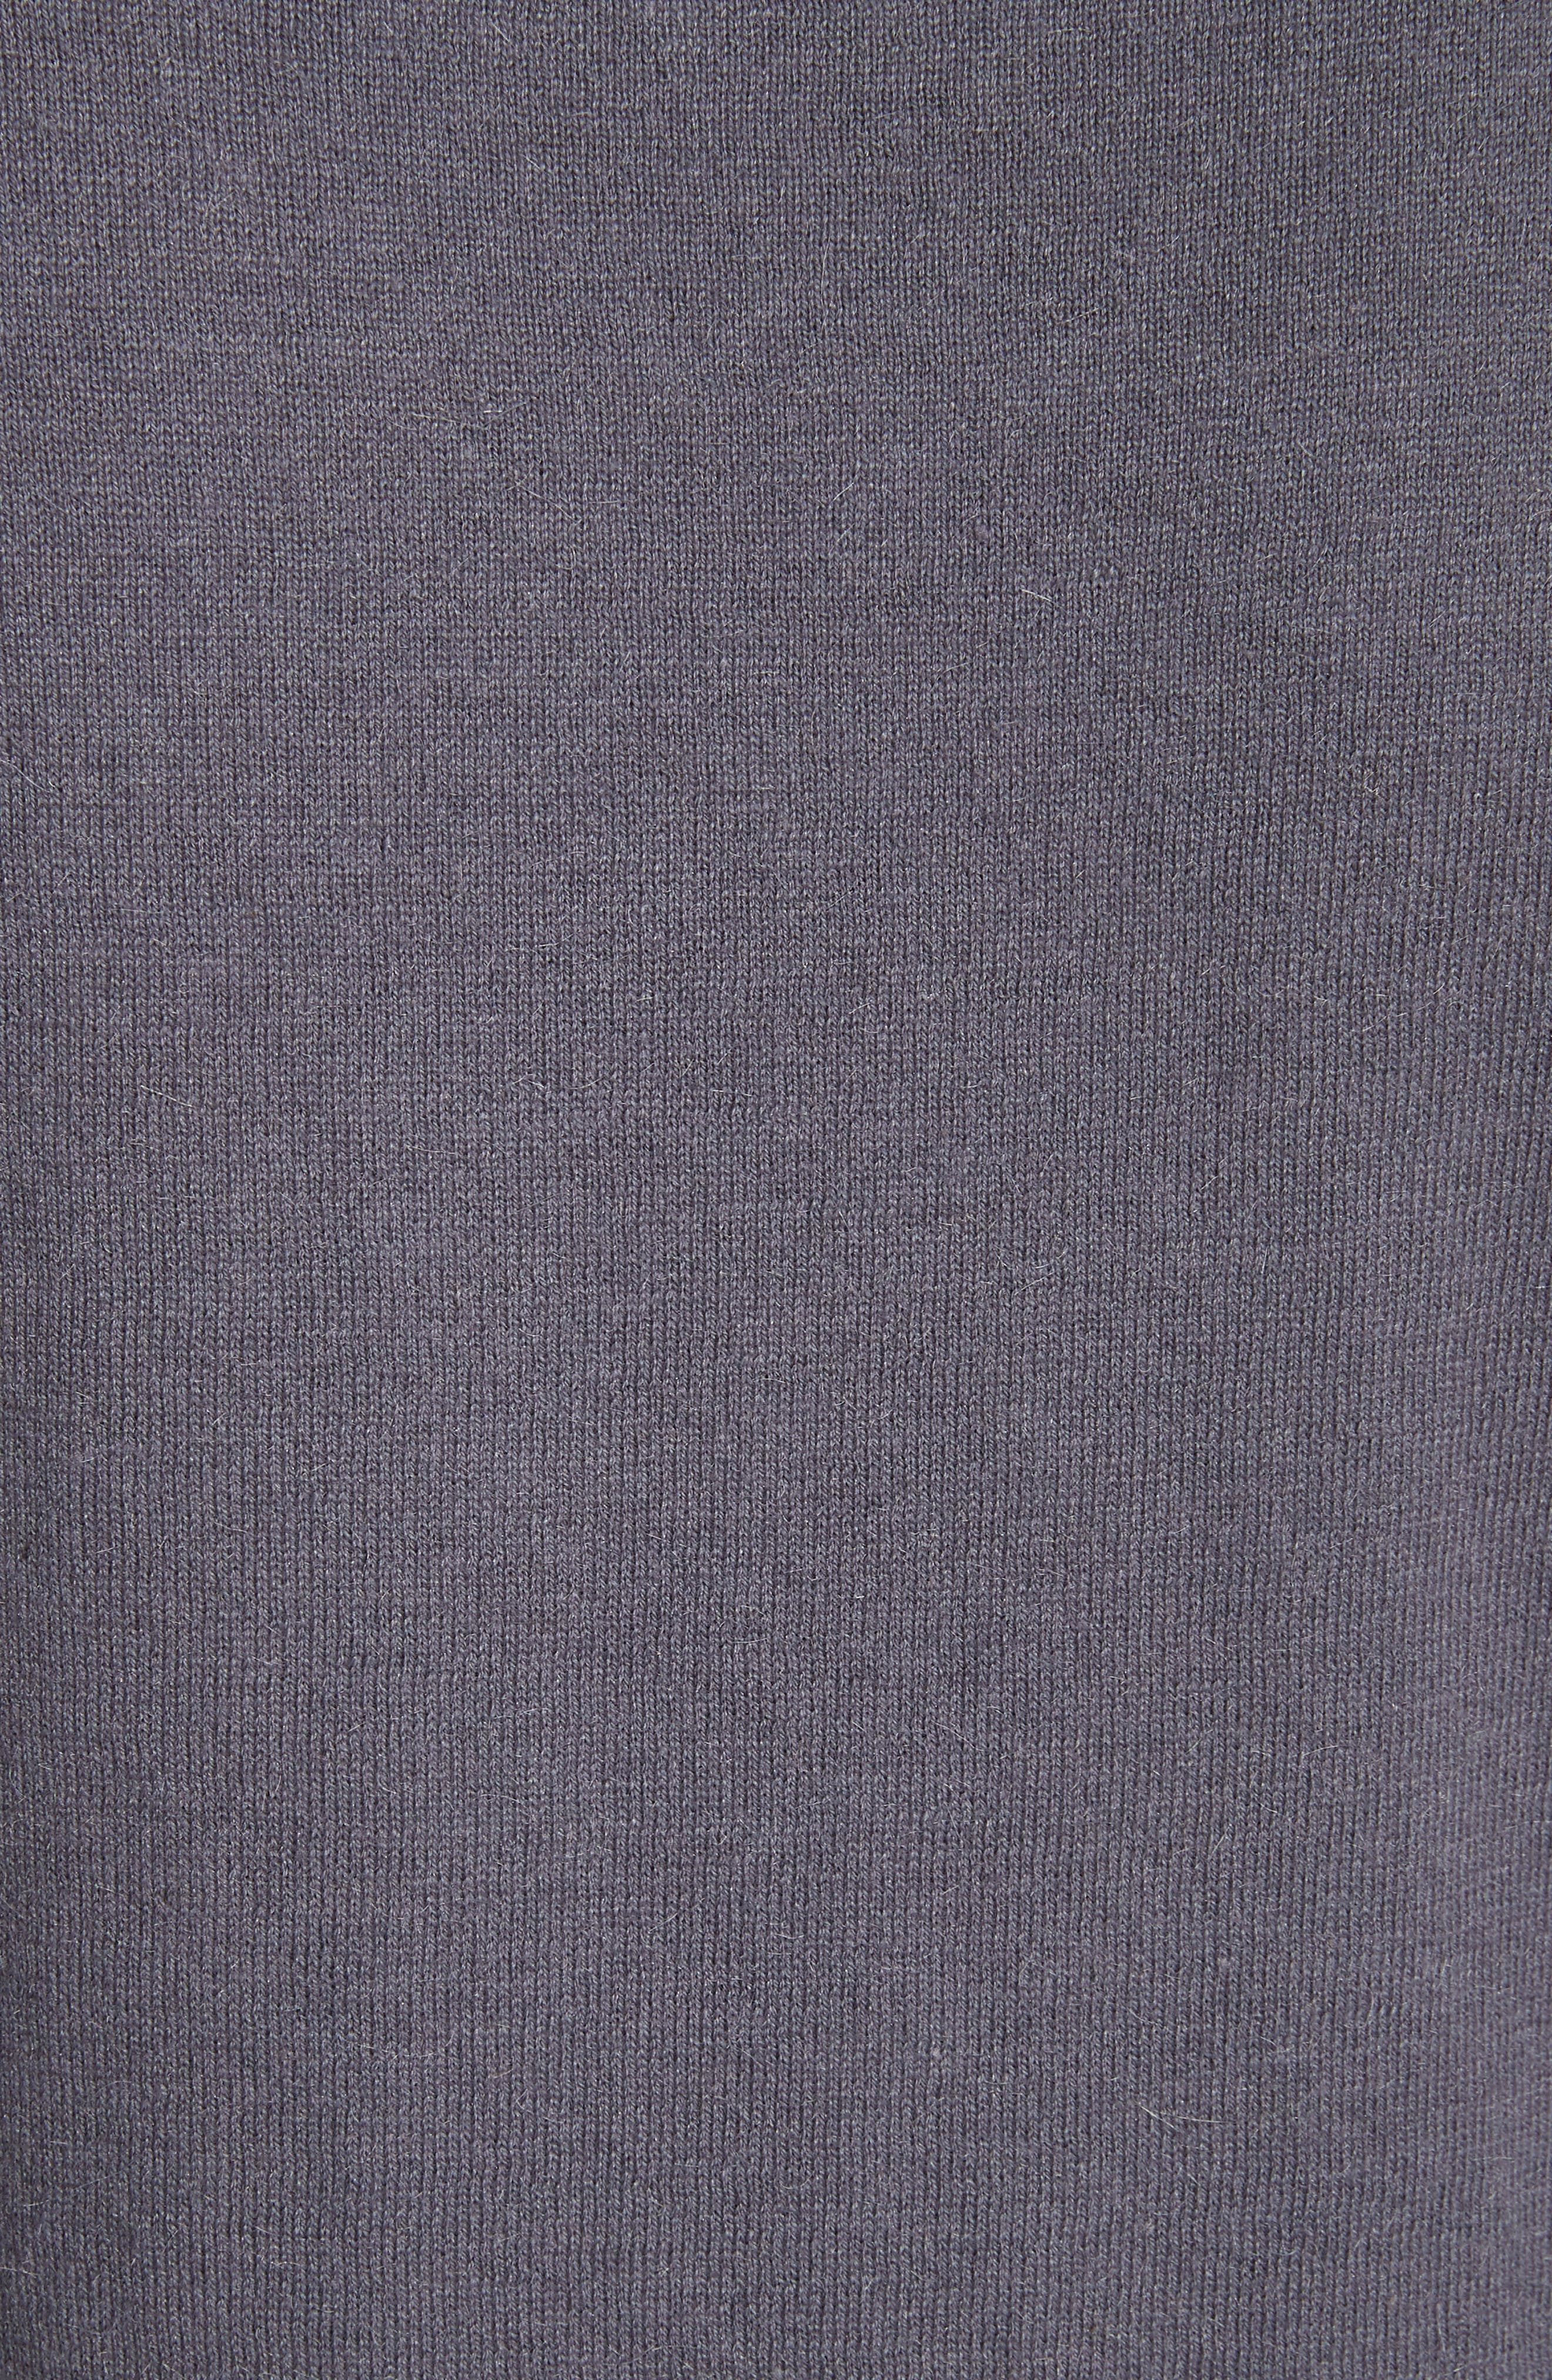 Chatswoth Woven Front Sweater,                             Alternate thumbnail 5, color,                             Grey